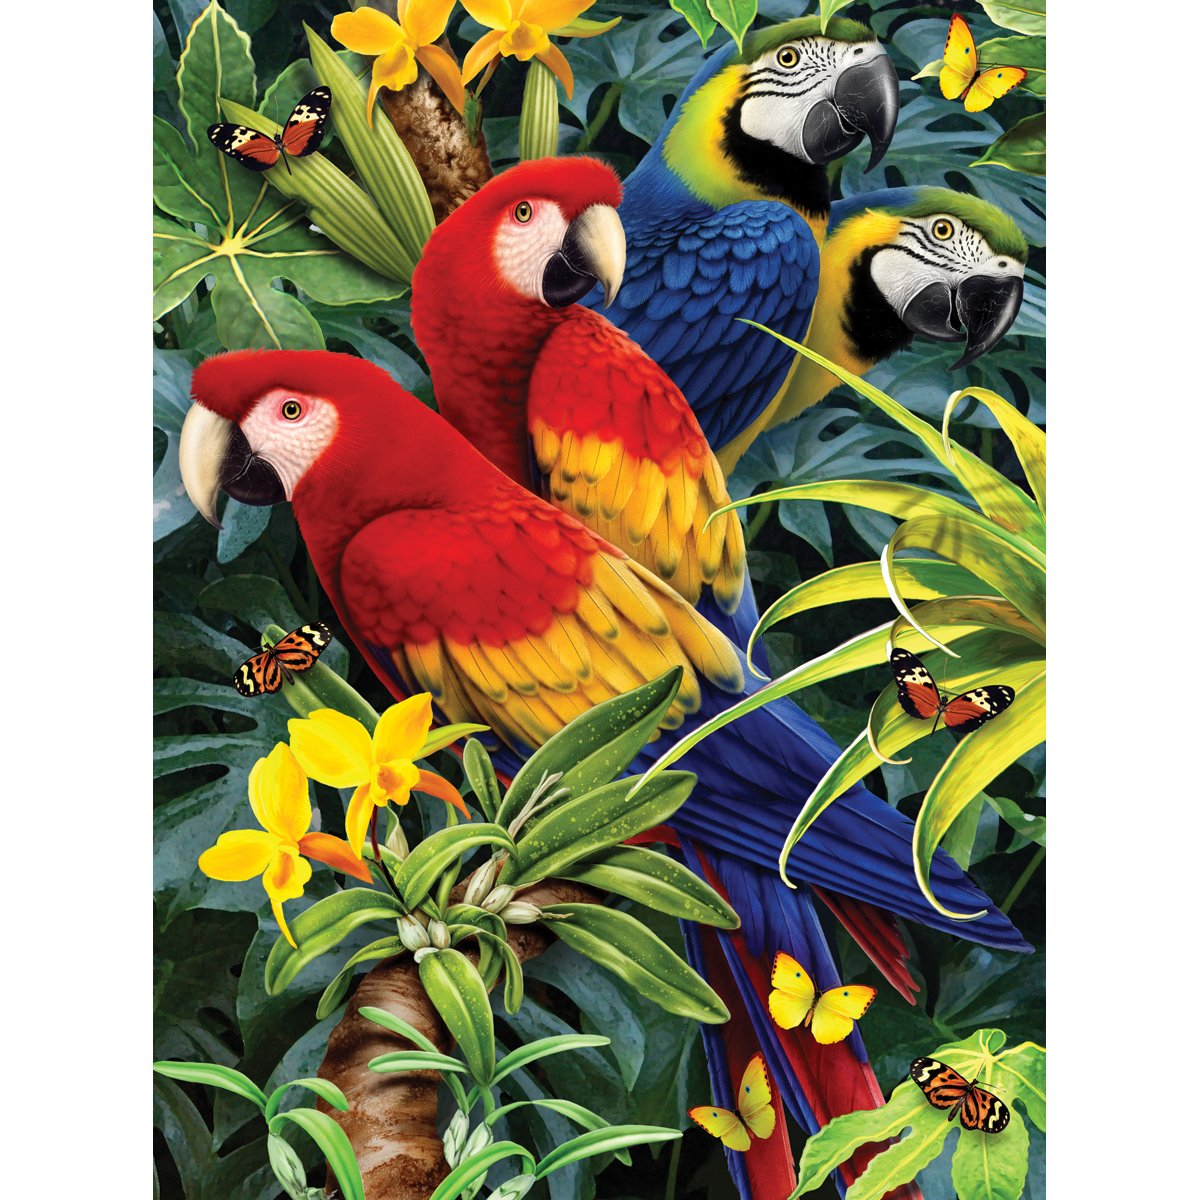 Royal Brush 8.75' X 11.75' Junior Paint by Number Kit, Small, Majestic Macaws Royal Brush 8.75 X 11.75 Junior Paint by Number Kit PJS-83